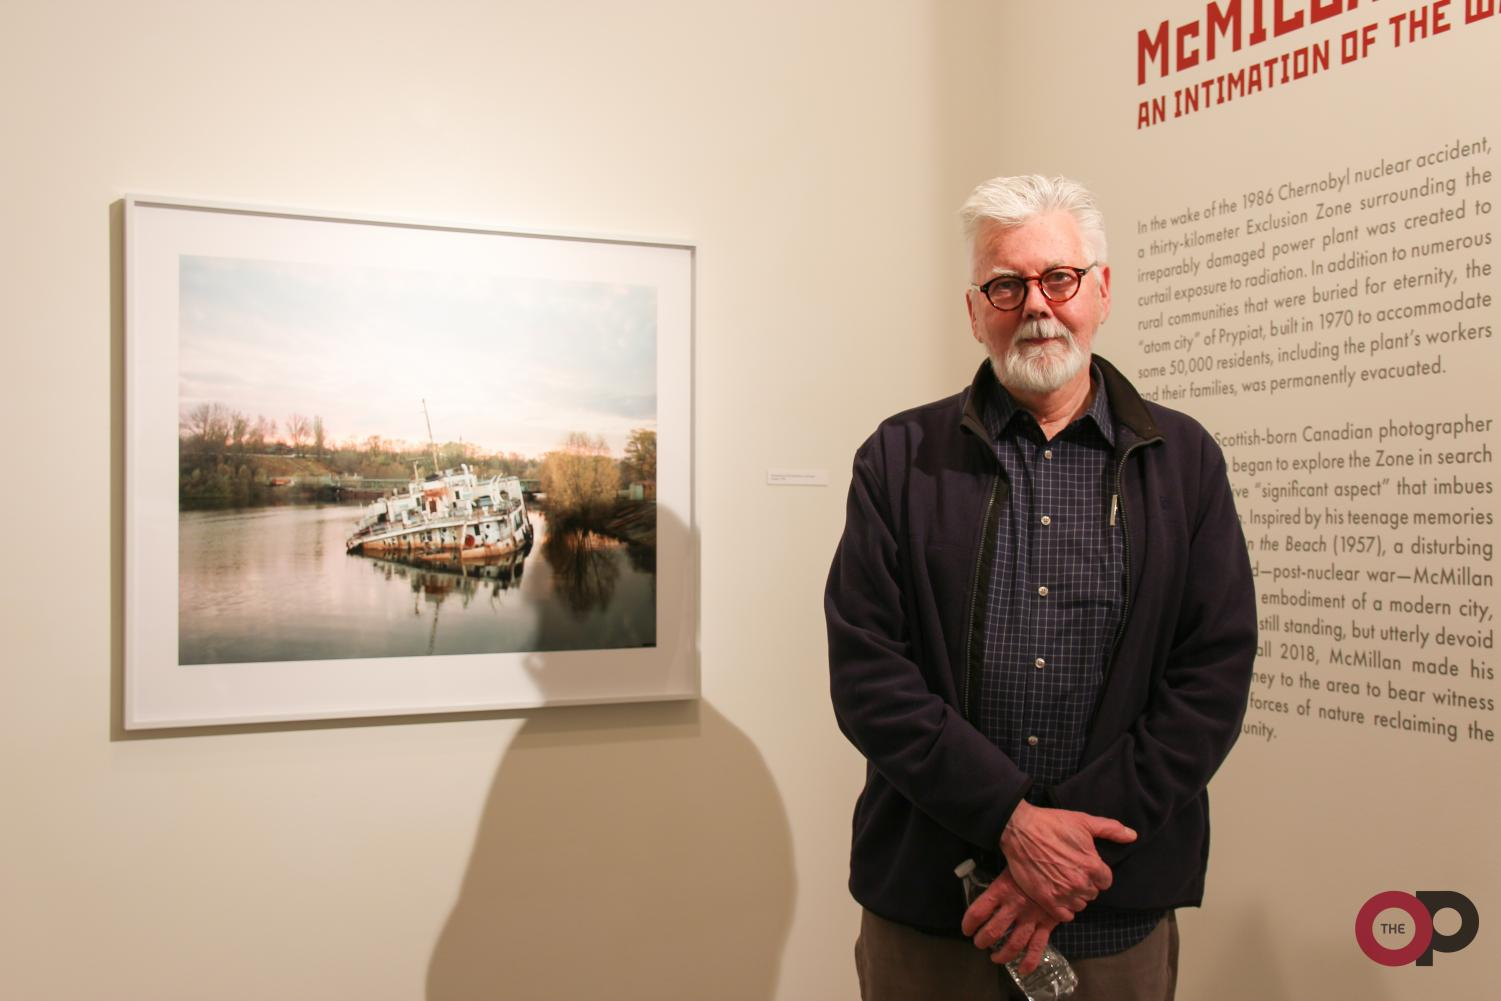 David McMillian felt drawn to the disaster zone of Pripyat, returning to it between 1994 and 2017.